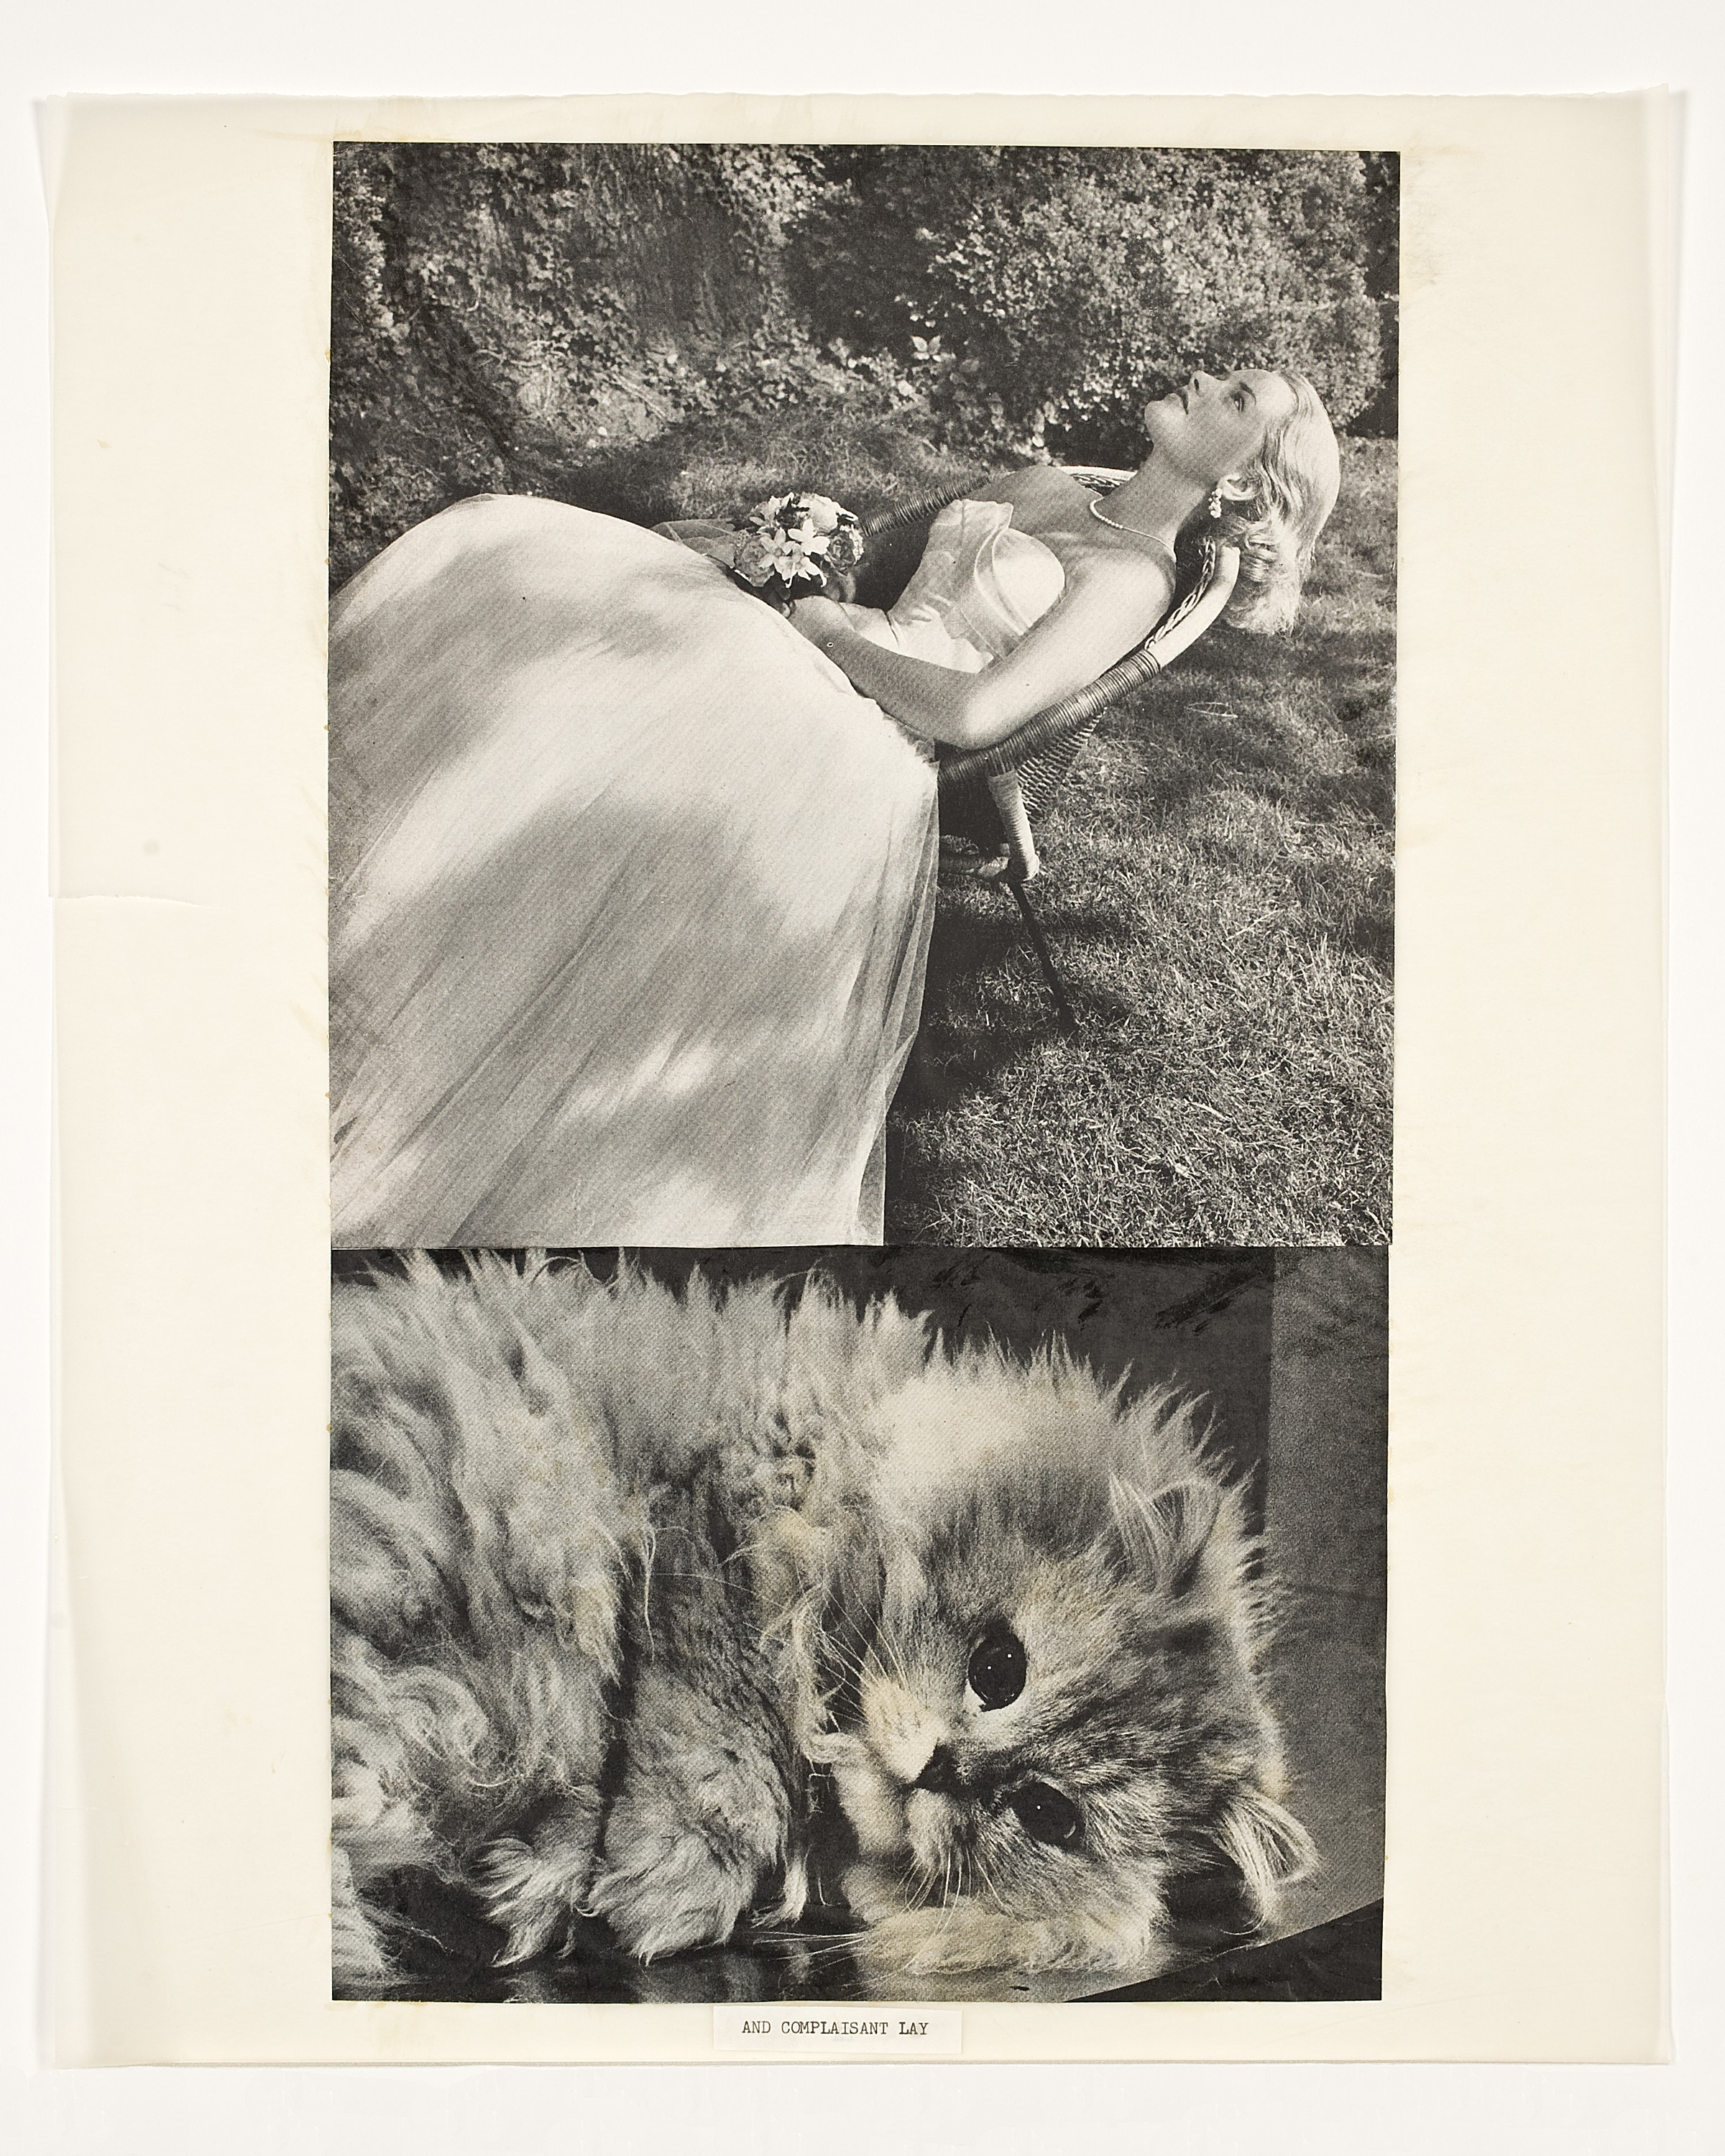 "At top, an image of a woman in a large gown reclining in a wicker chair on a lawn. At the bottom, an image of a cat curled on a table facing the camera. At the bottom, the words ""AND COMPLAISANT LAY."""